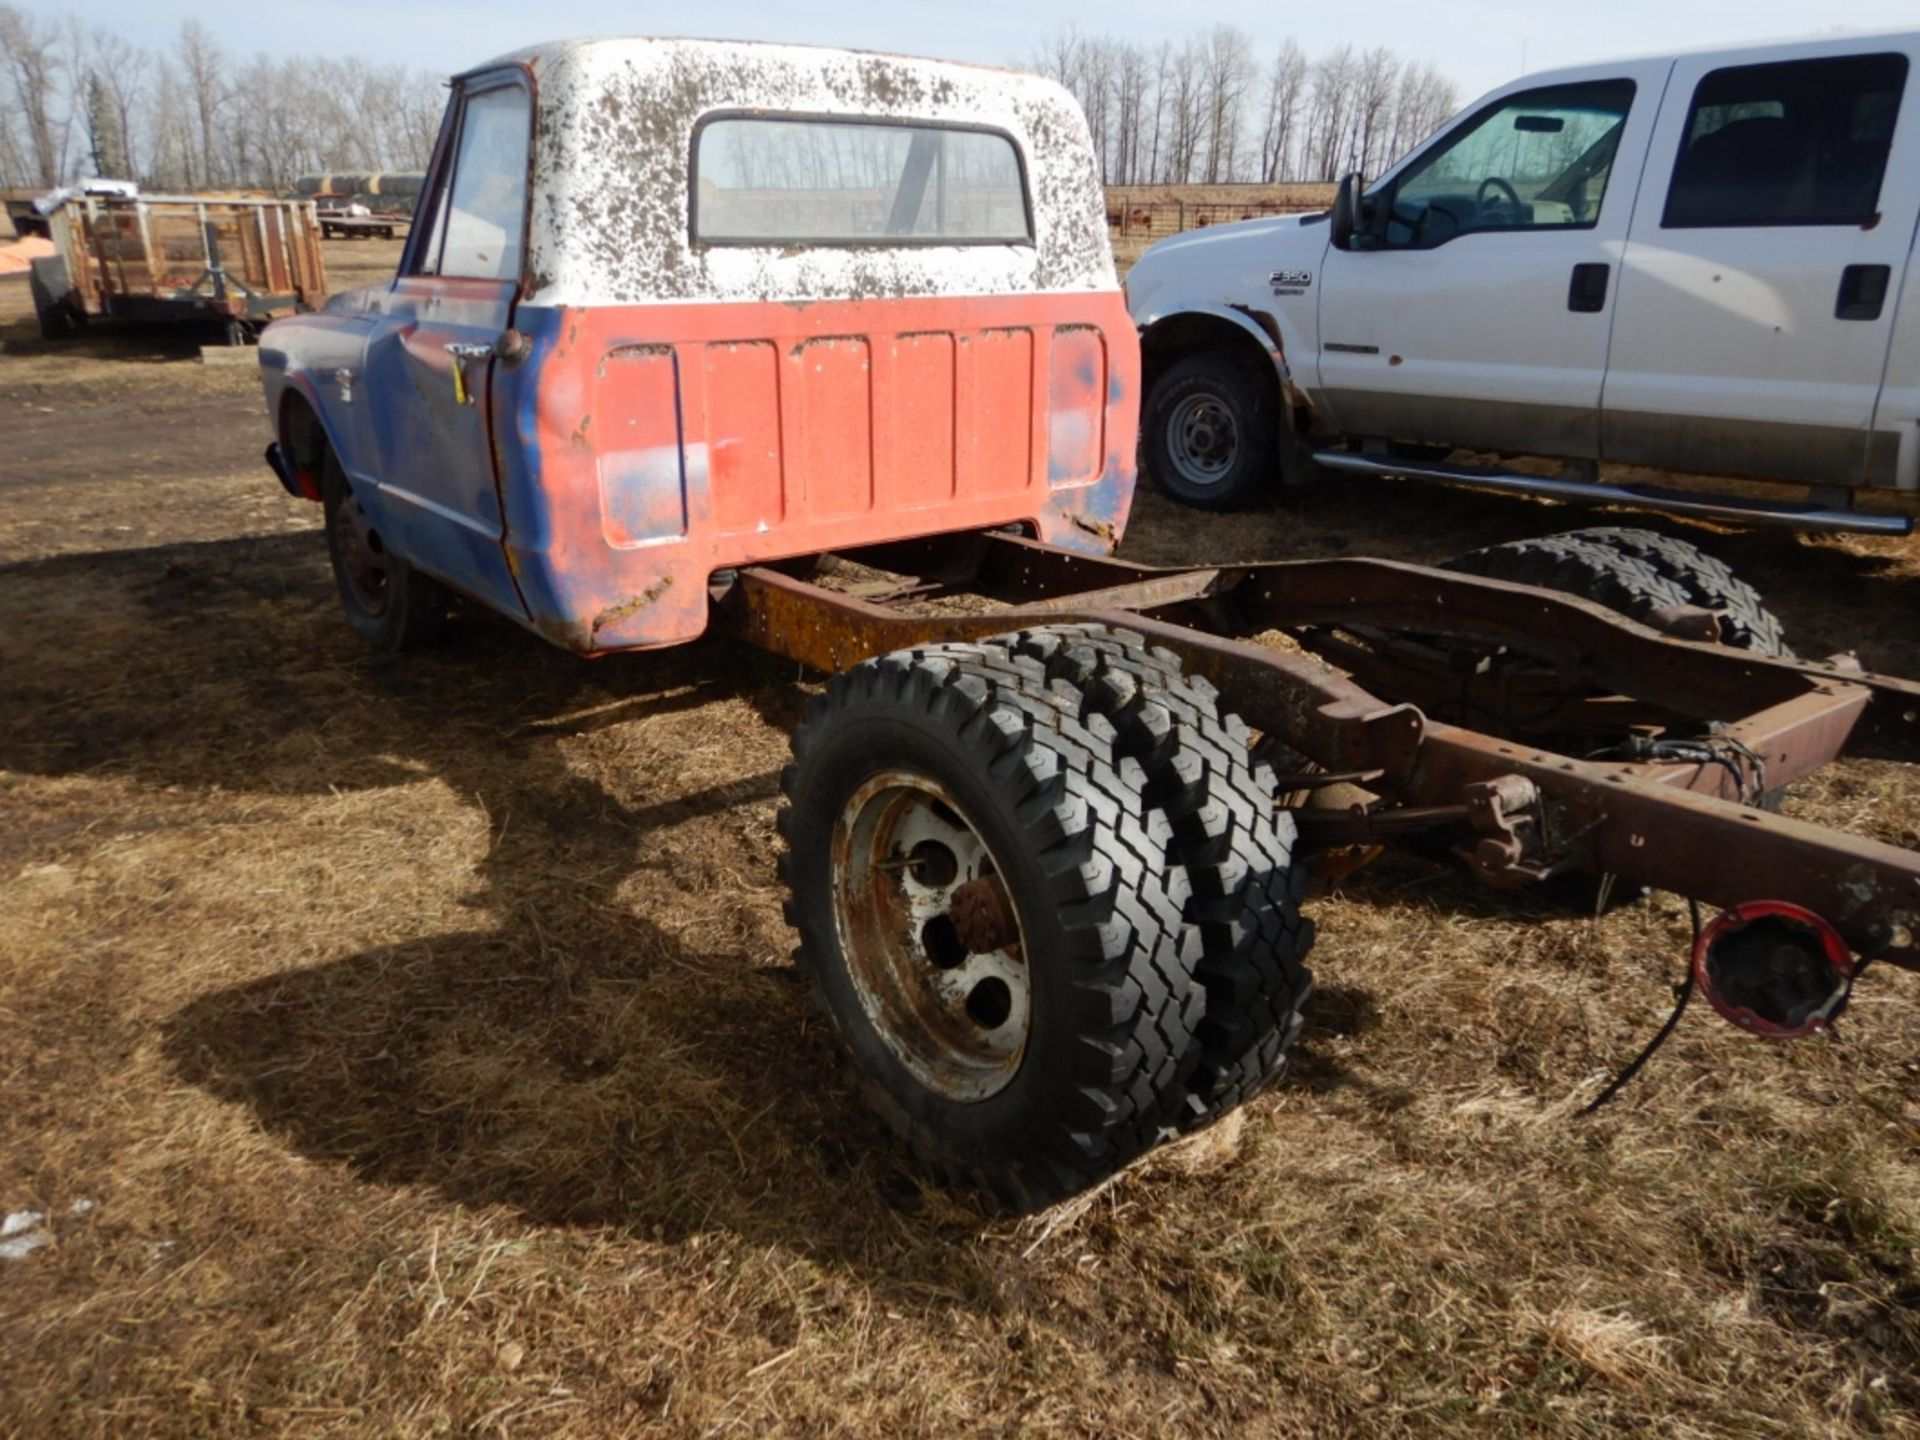 1970'S CHEV 30 CAB & CHASSIS - REG CAB, DUALS, NO ENGINE OR TRANSMISSION S/N CE3371125498 - Image 5 of 9